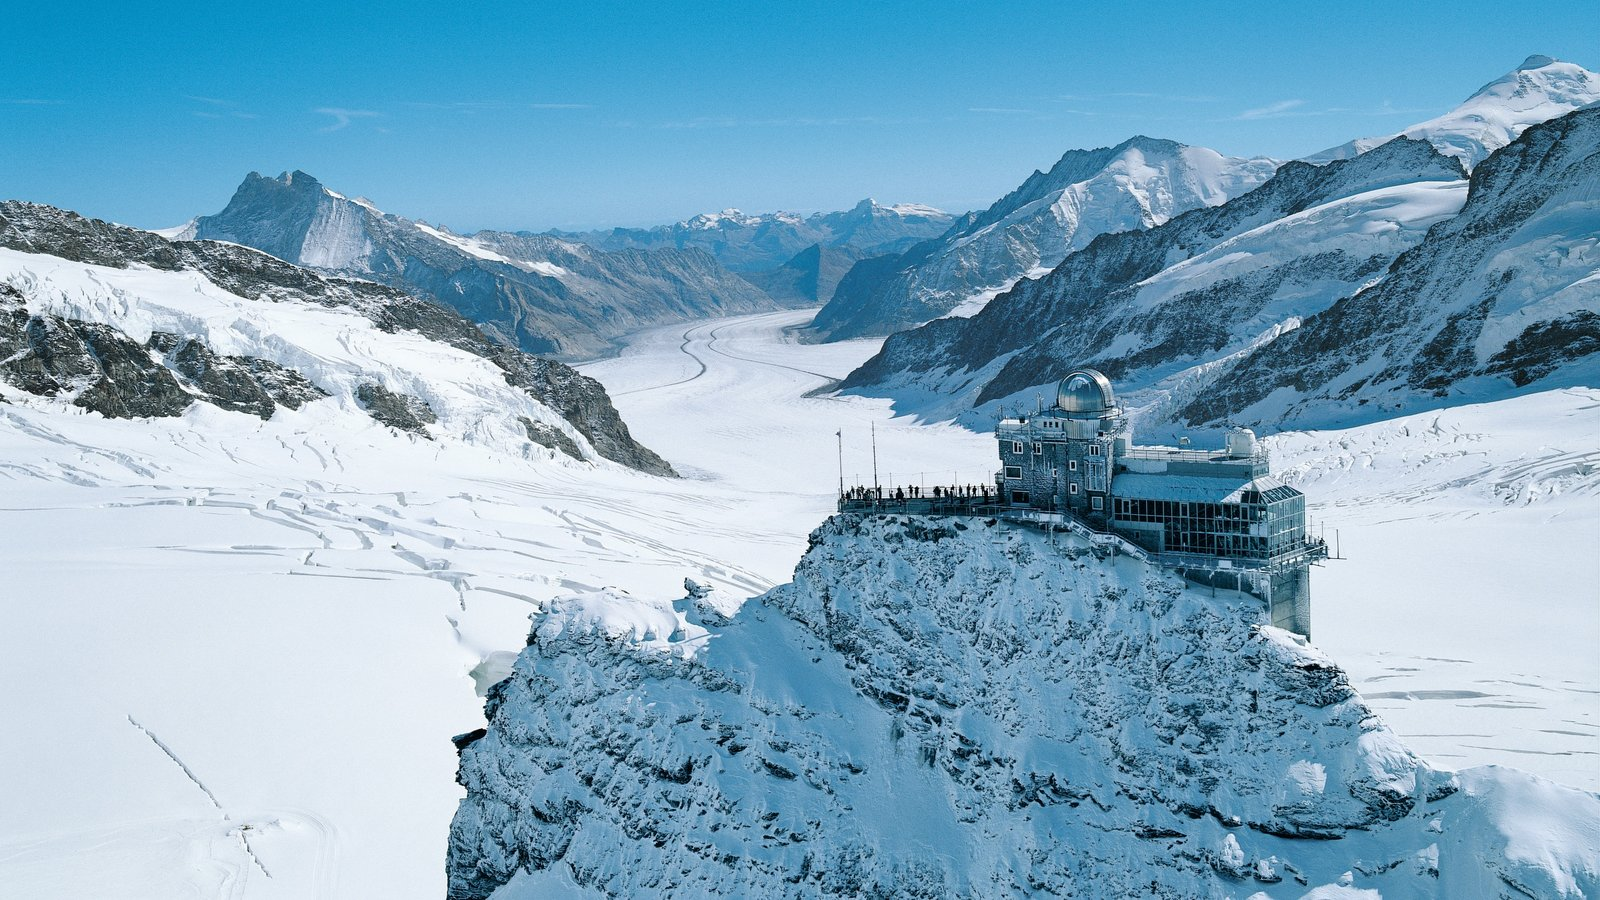 Jungfraujoch featuring an observatory, snow and mountains